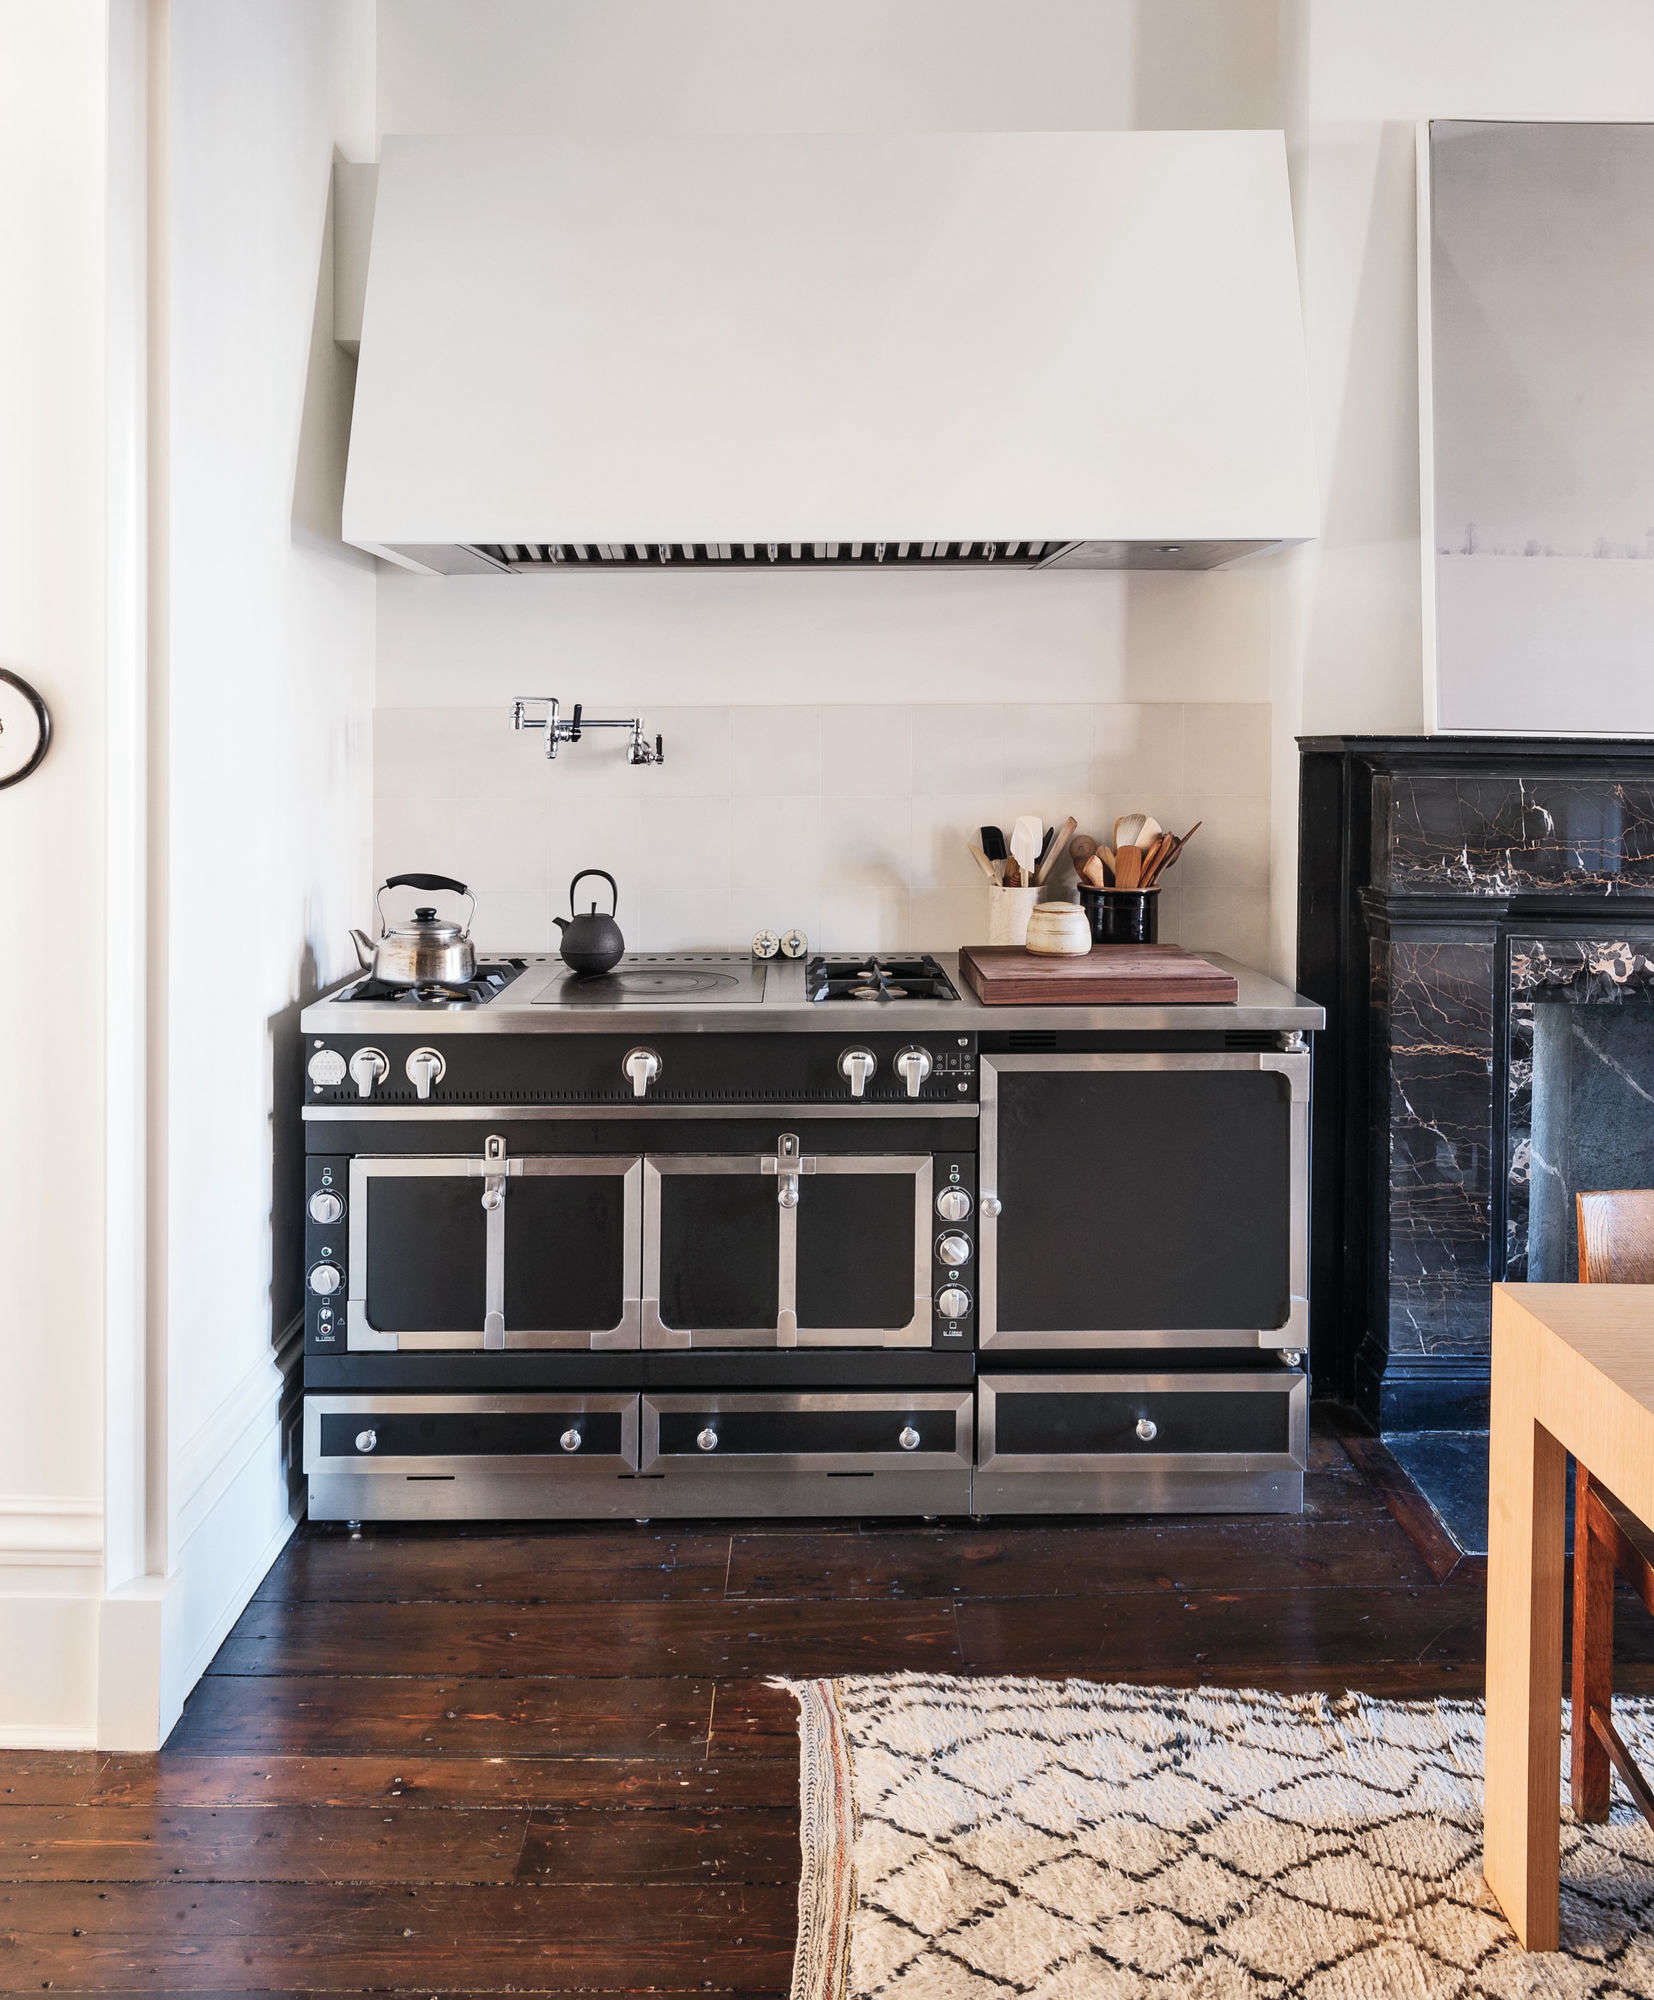 10 Easy Pieces: Retro Kitchen Ranges